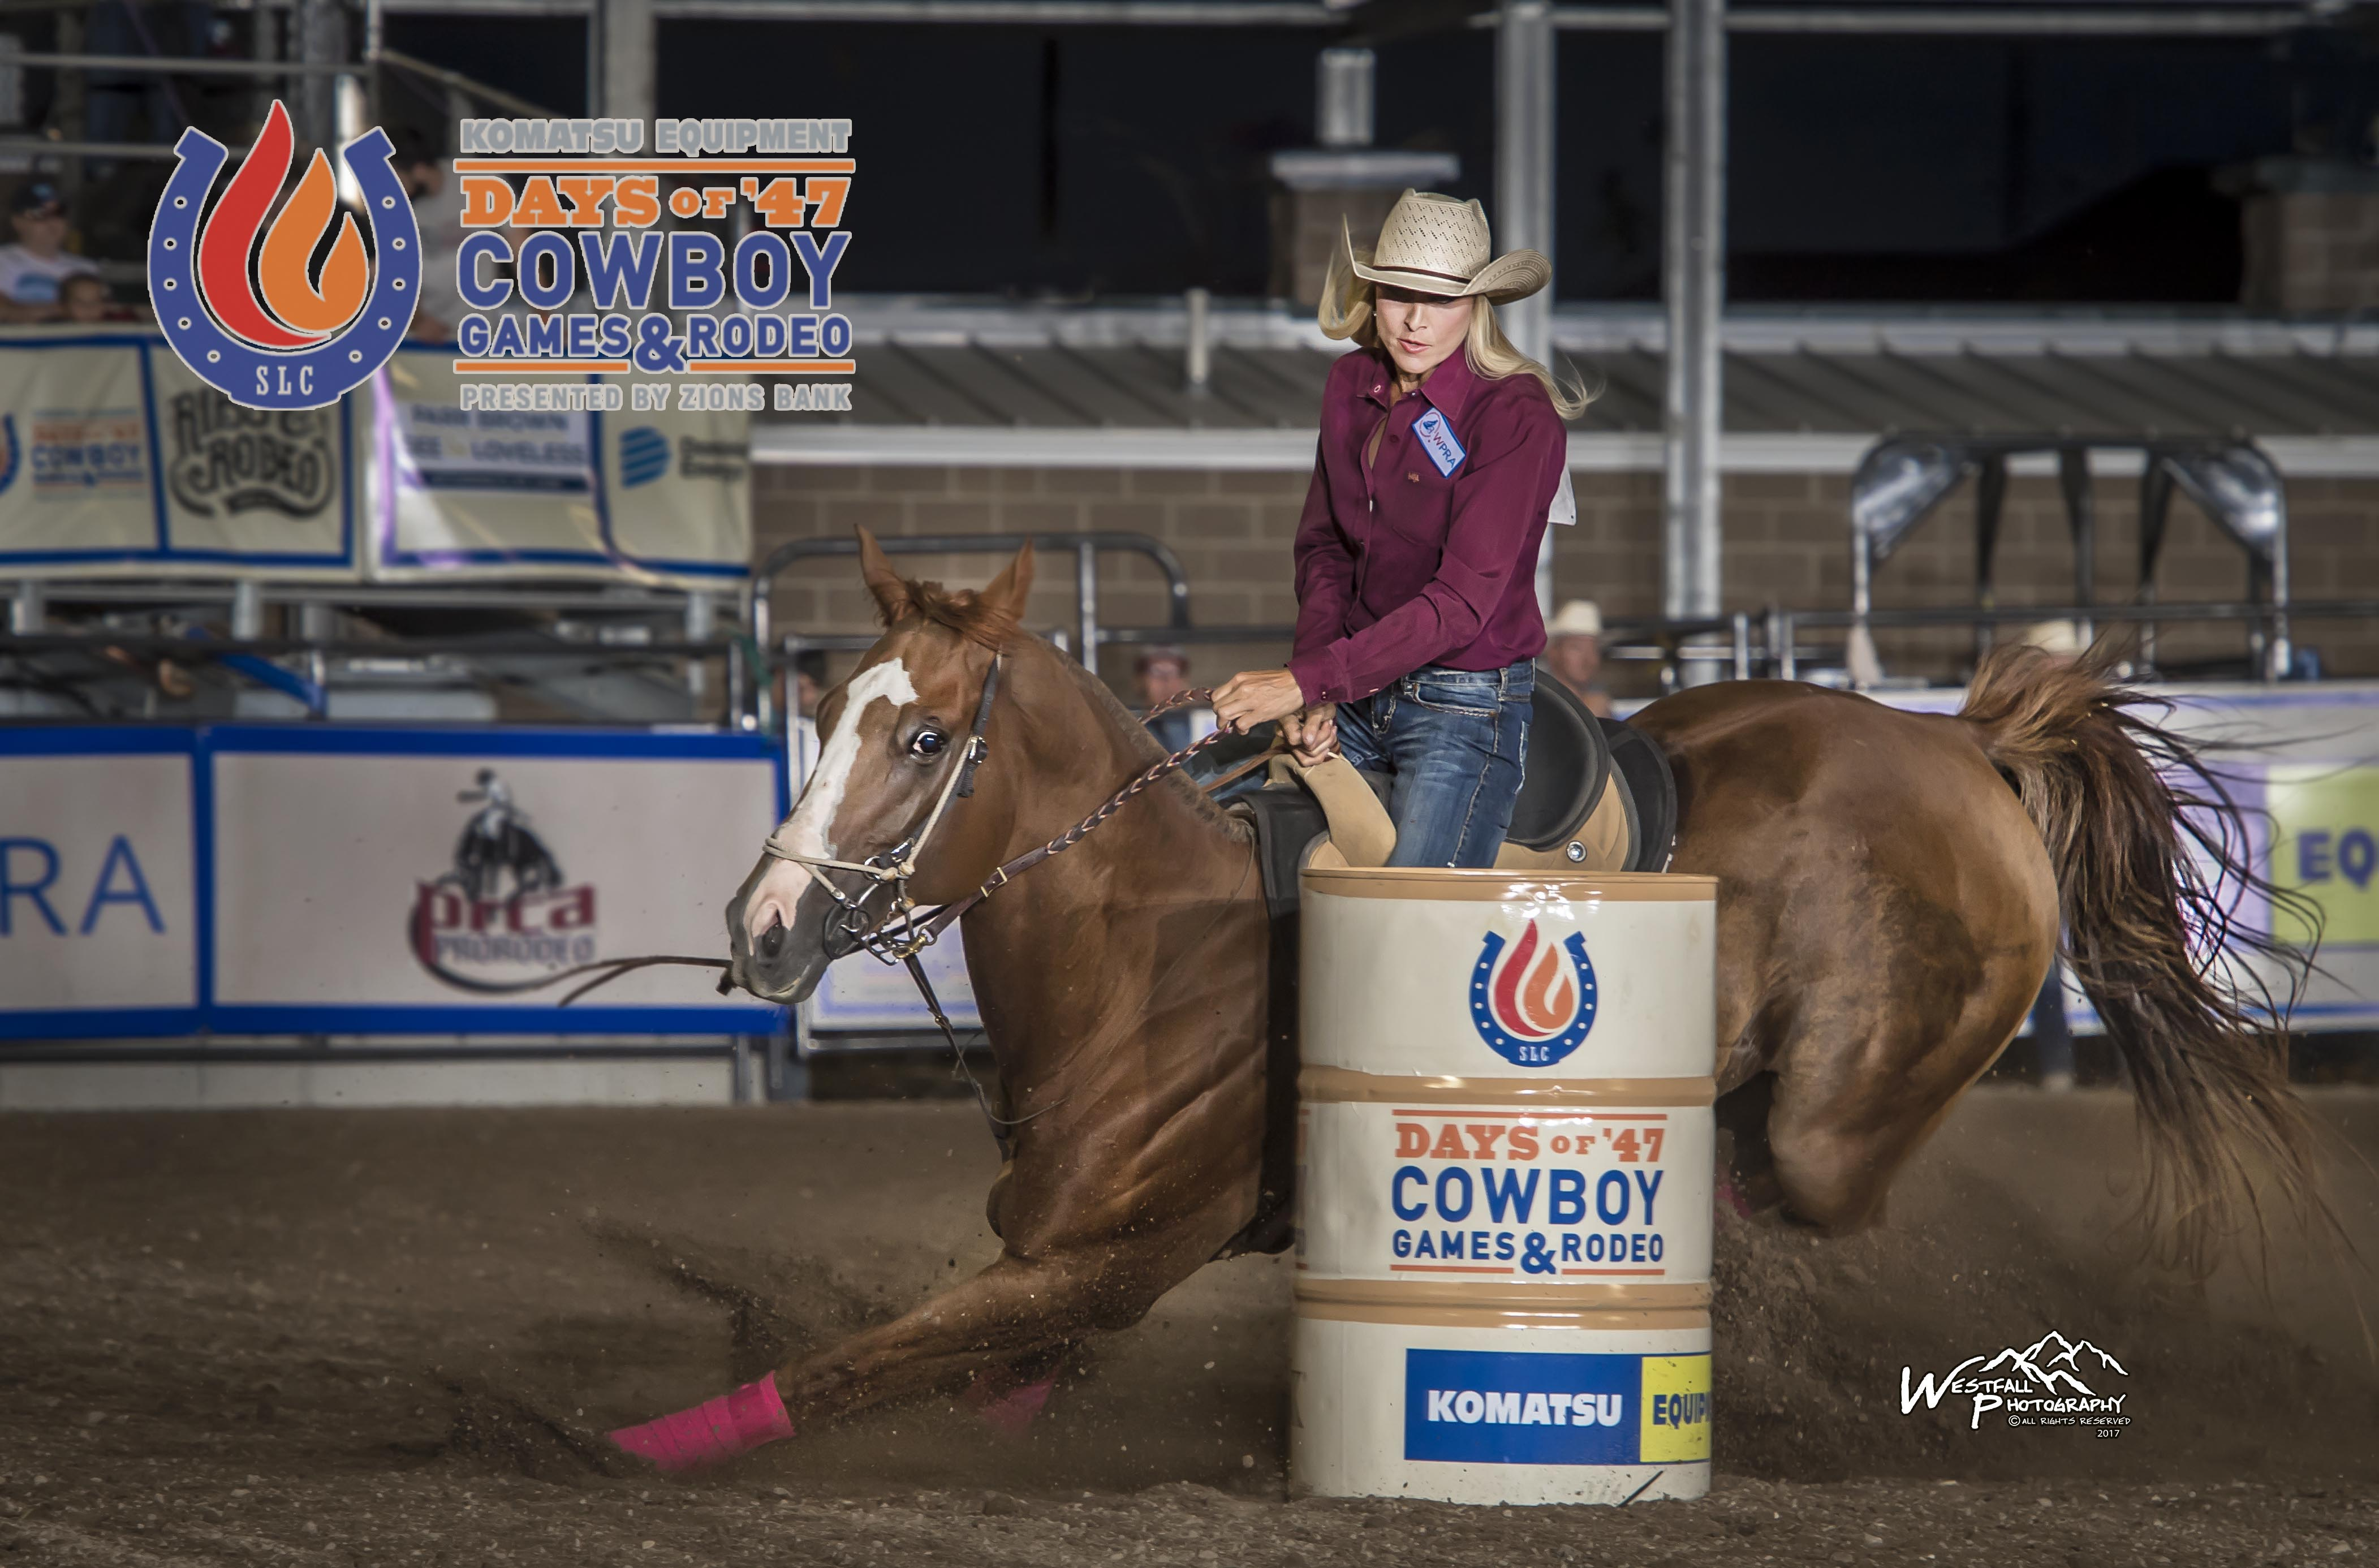 Days Of 47 Cowboy Games And Rodeo Off To A Fast Start